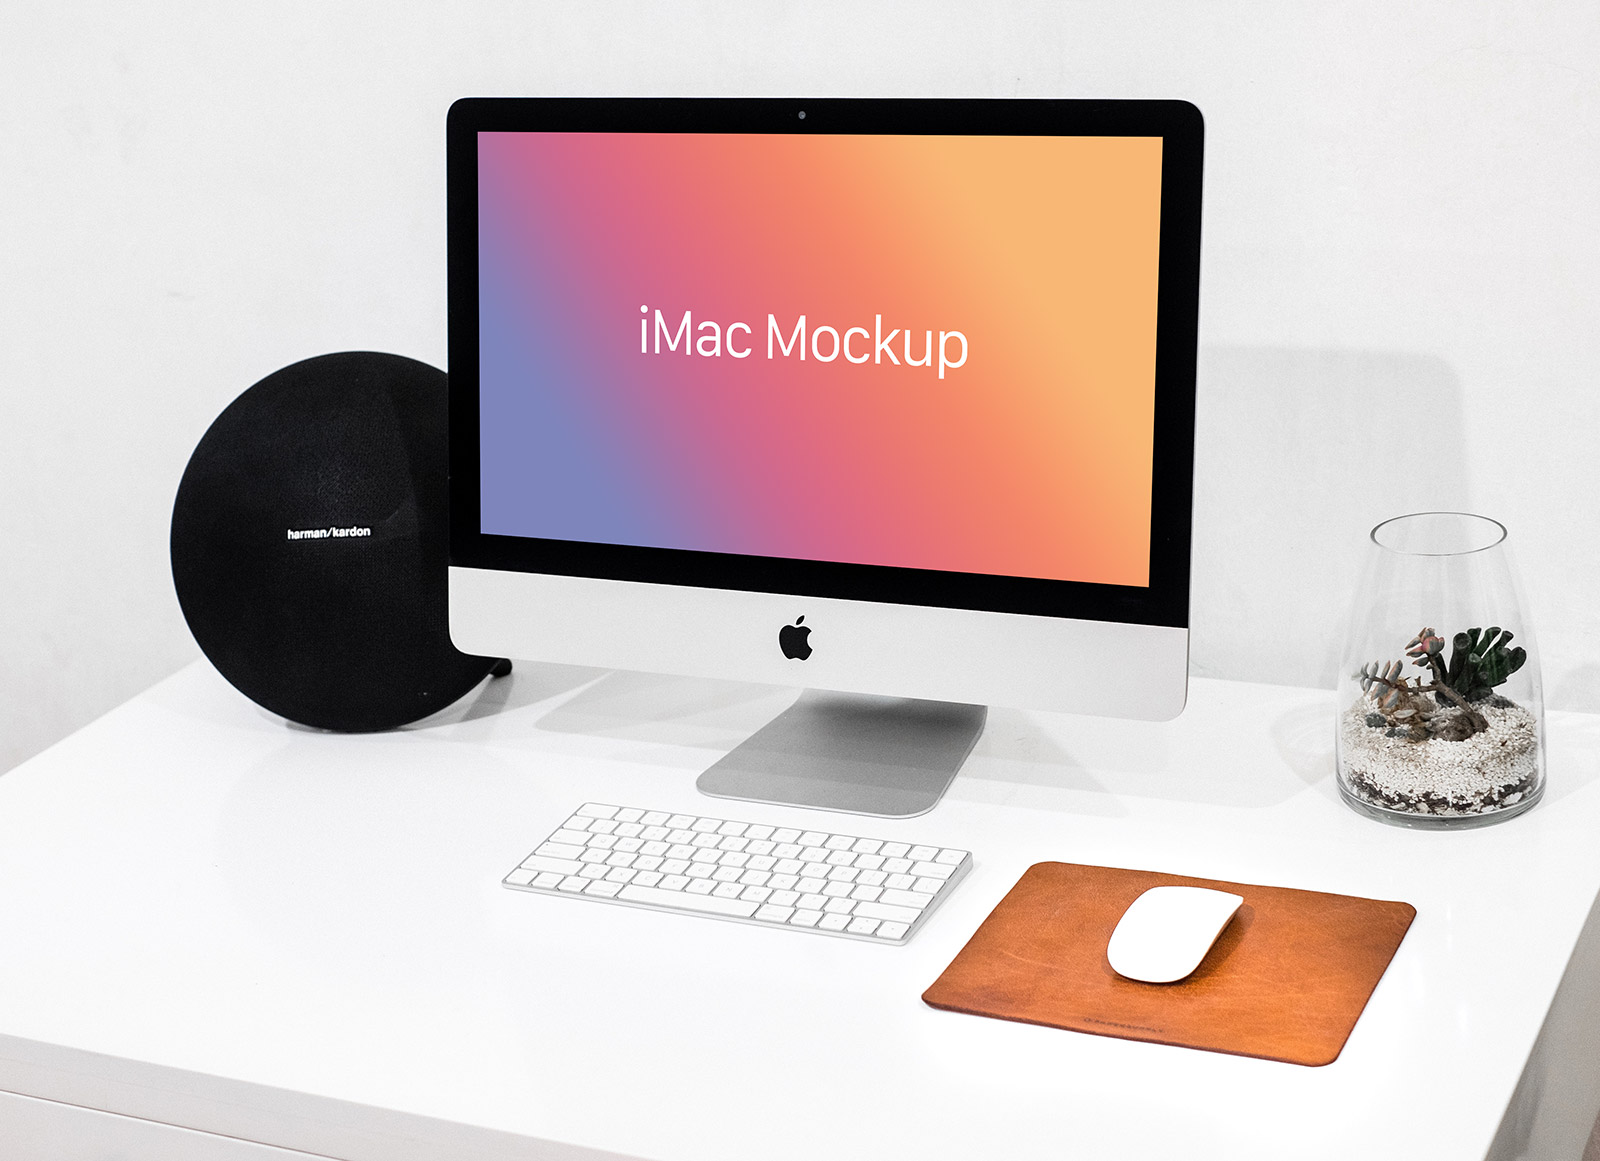 Free Apple Imac Mockup On White Desk